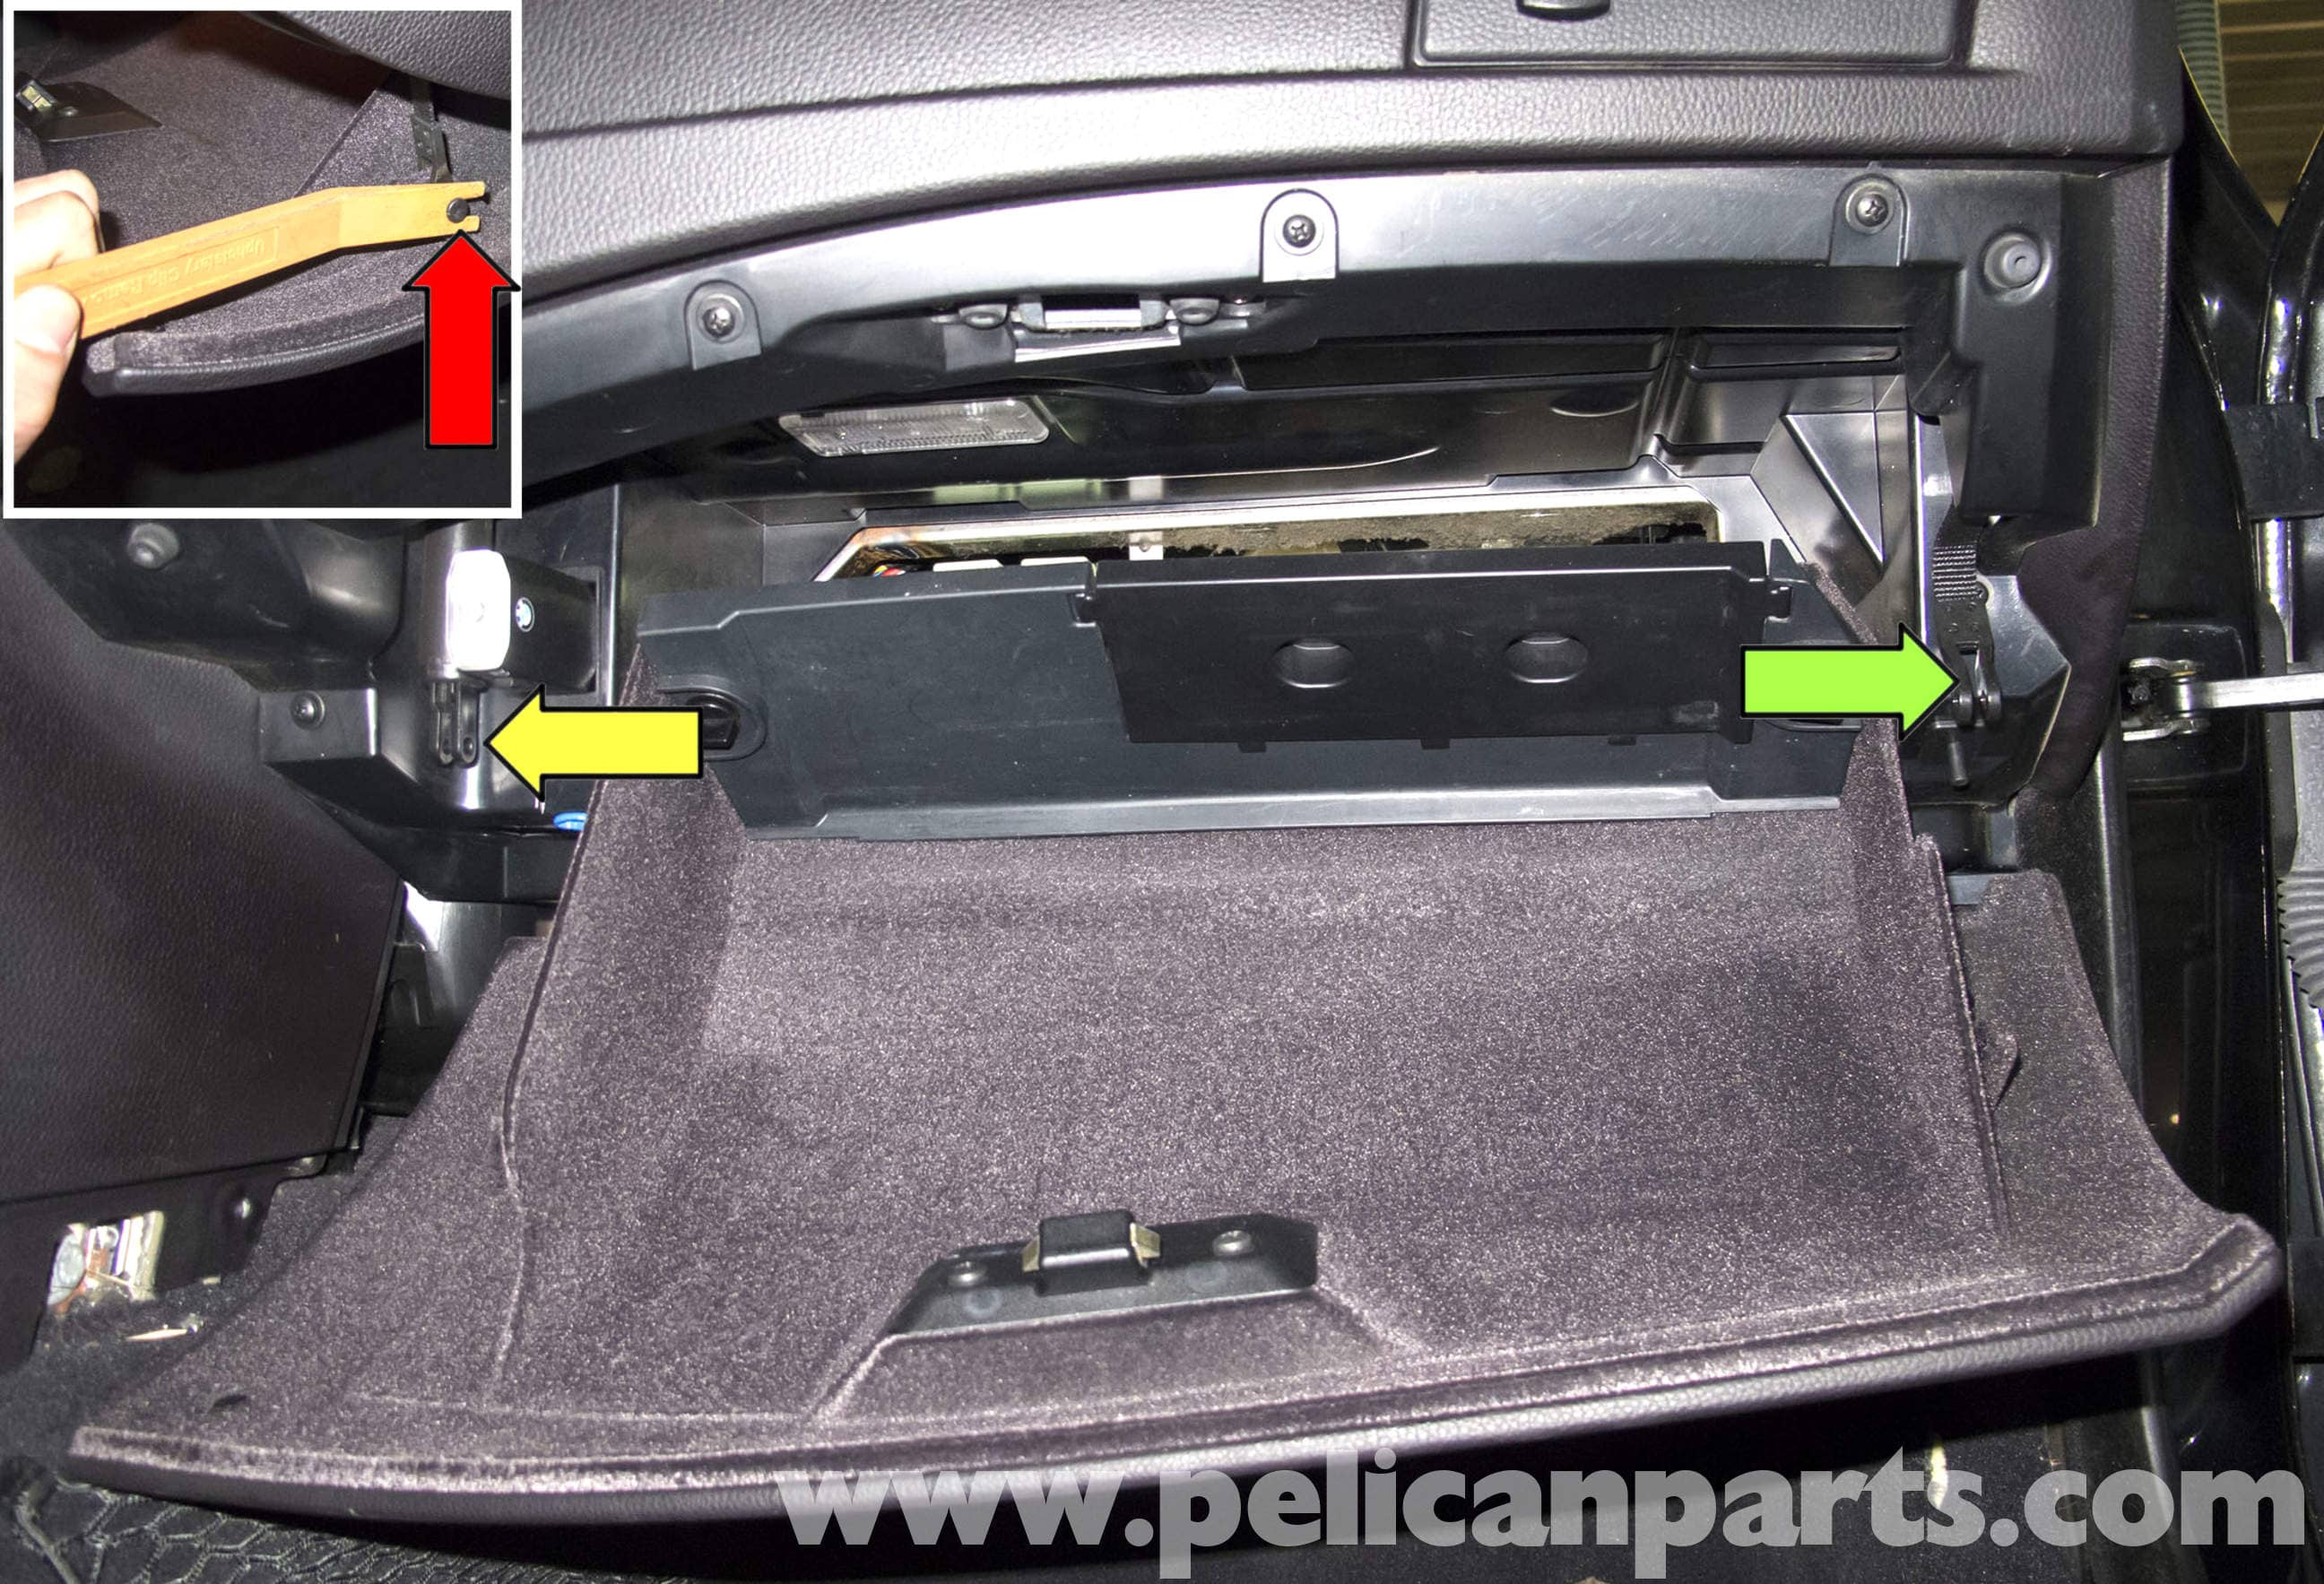 pic01 bmw 535i fuse box 2011 bmw 535i fuse diagram \u2022 free wiring E63 M6 White at nearapp.co